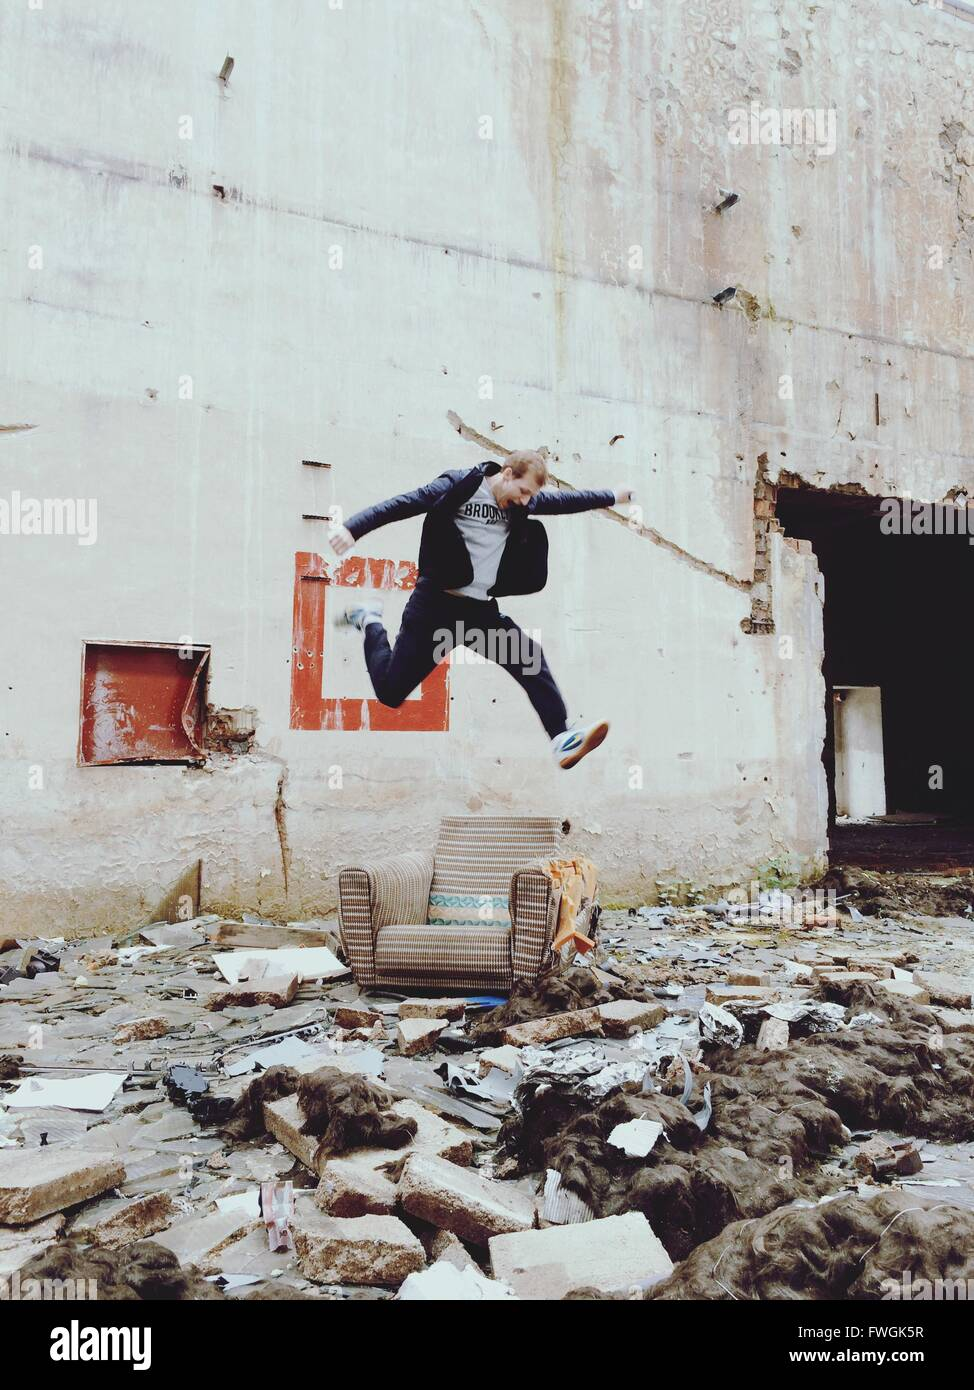 Young Man Jumping Over Chair Outside Abandoned Building - Stock Image